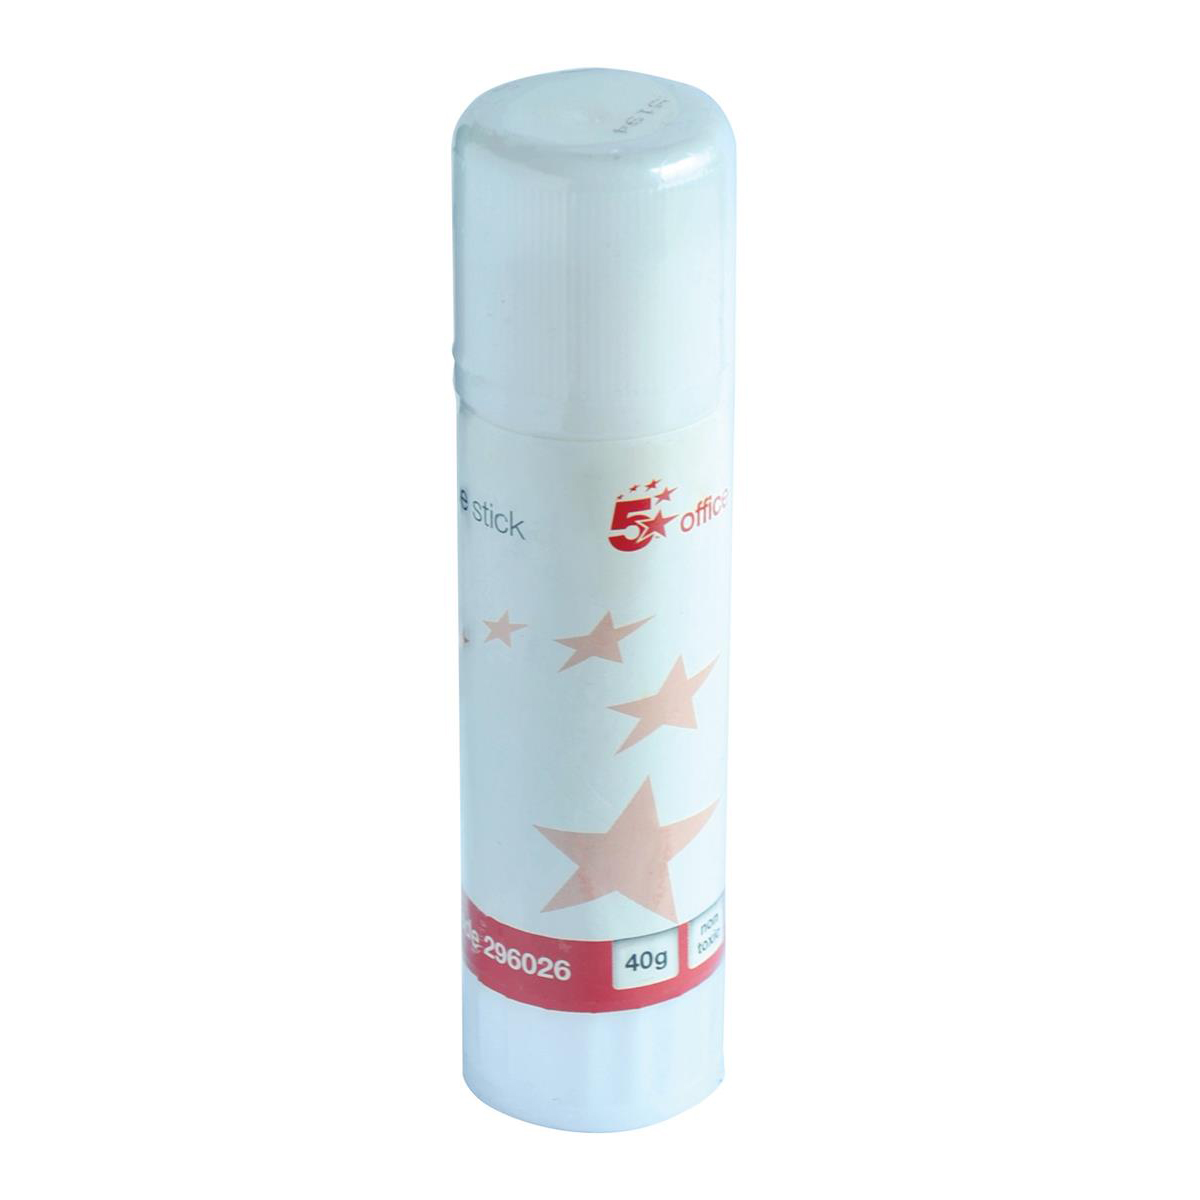 5 Star Office Glue Stick Large 40g Pack 30